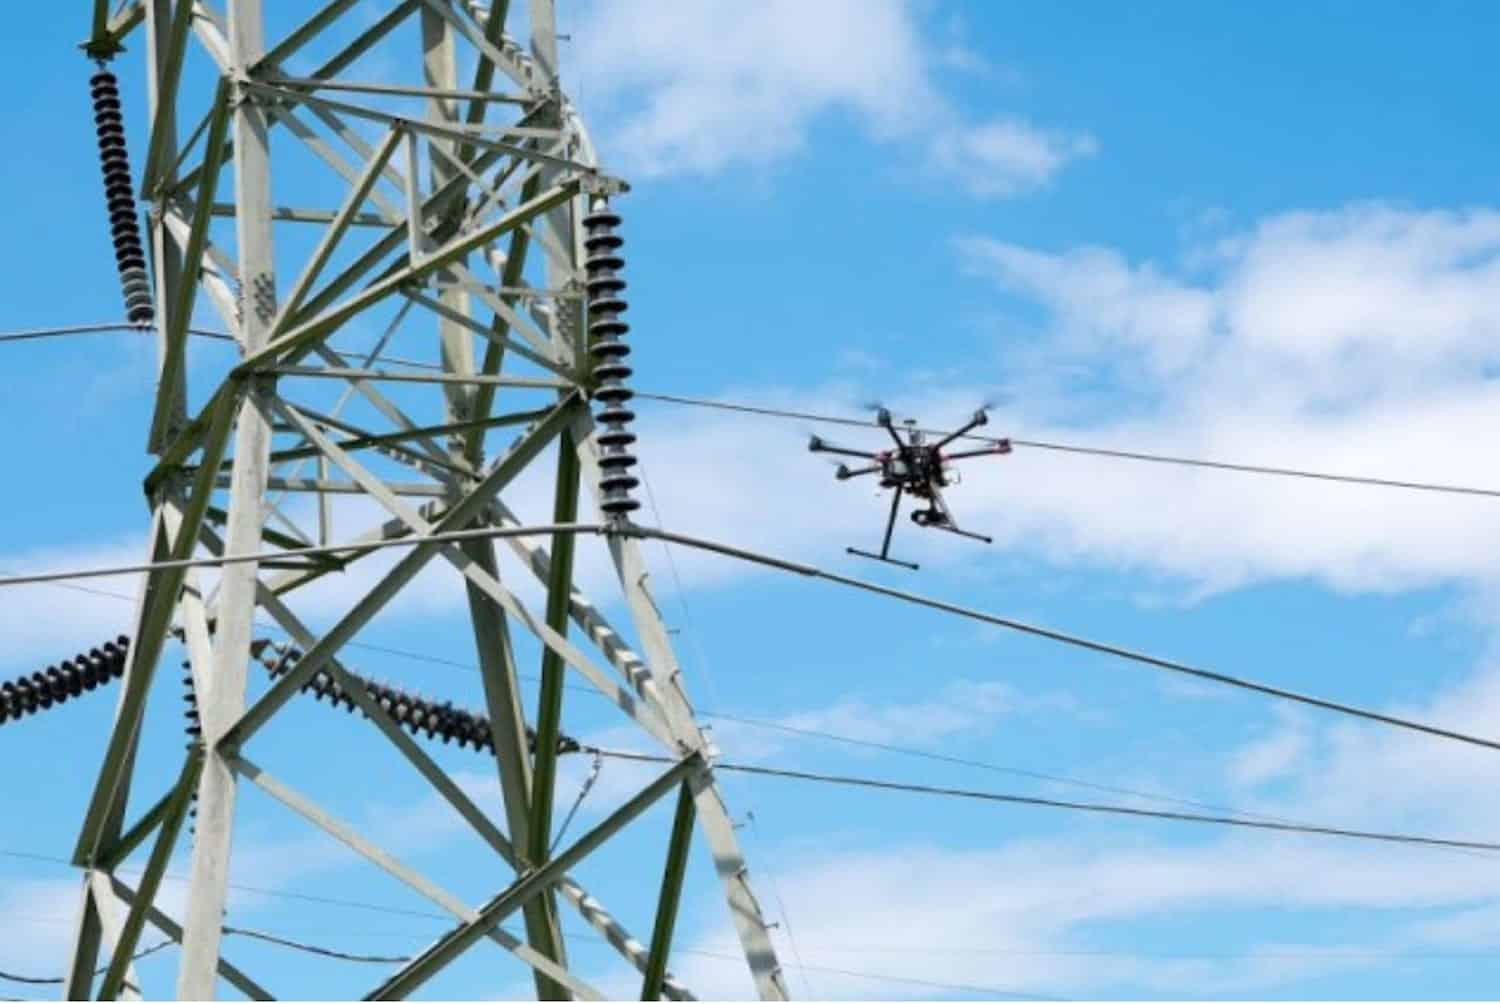 PG&E conducts power line inspections with drones and helicopters